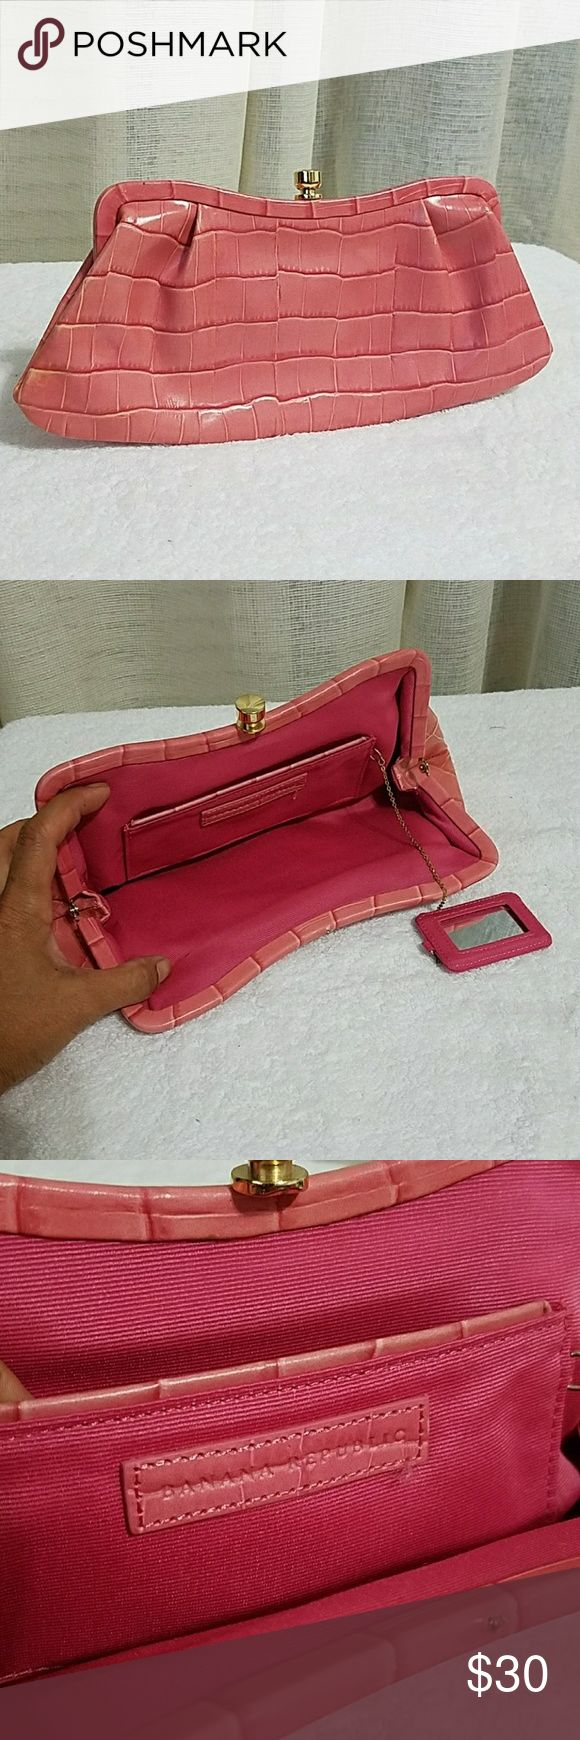 Banana Republic Pretty in Salmon Pink Clutch Bag in new condition, made fr. leather, twist lock closure with small chain attached mirror. it's really pretty, great party clutch bag Banana Republic Bags Clutches & Wristlets